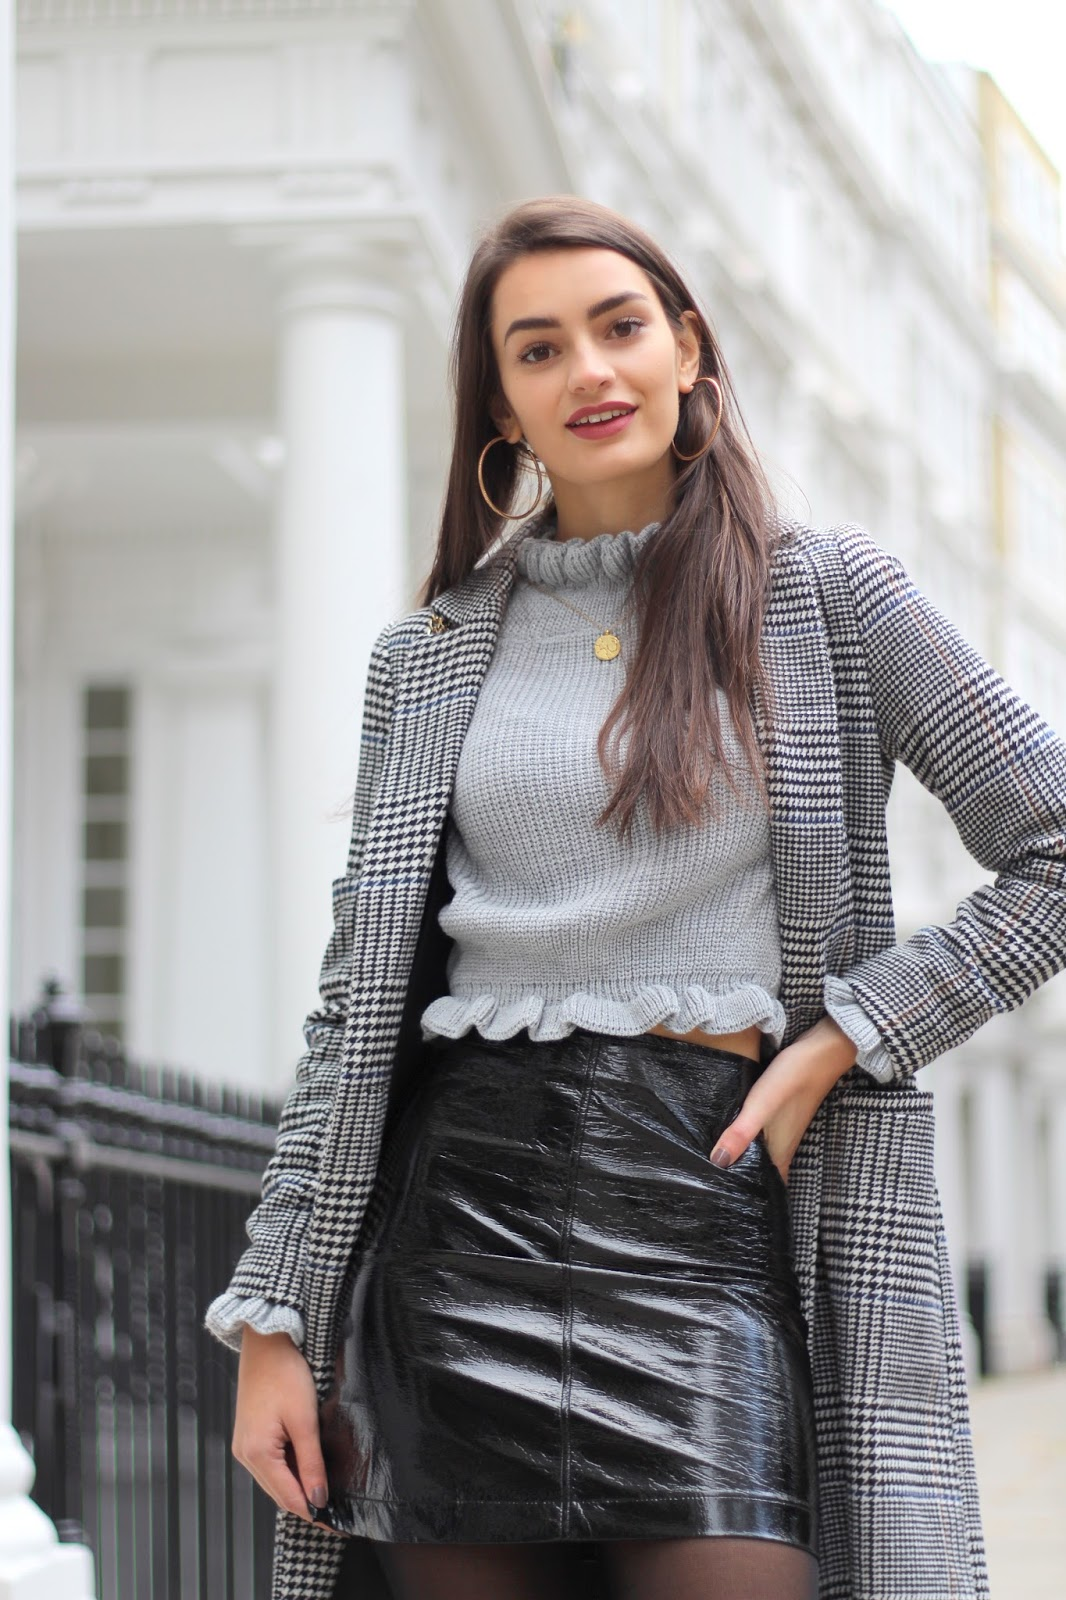 peexo winter style blogger fashion london